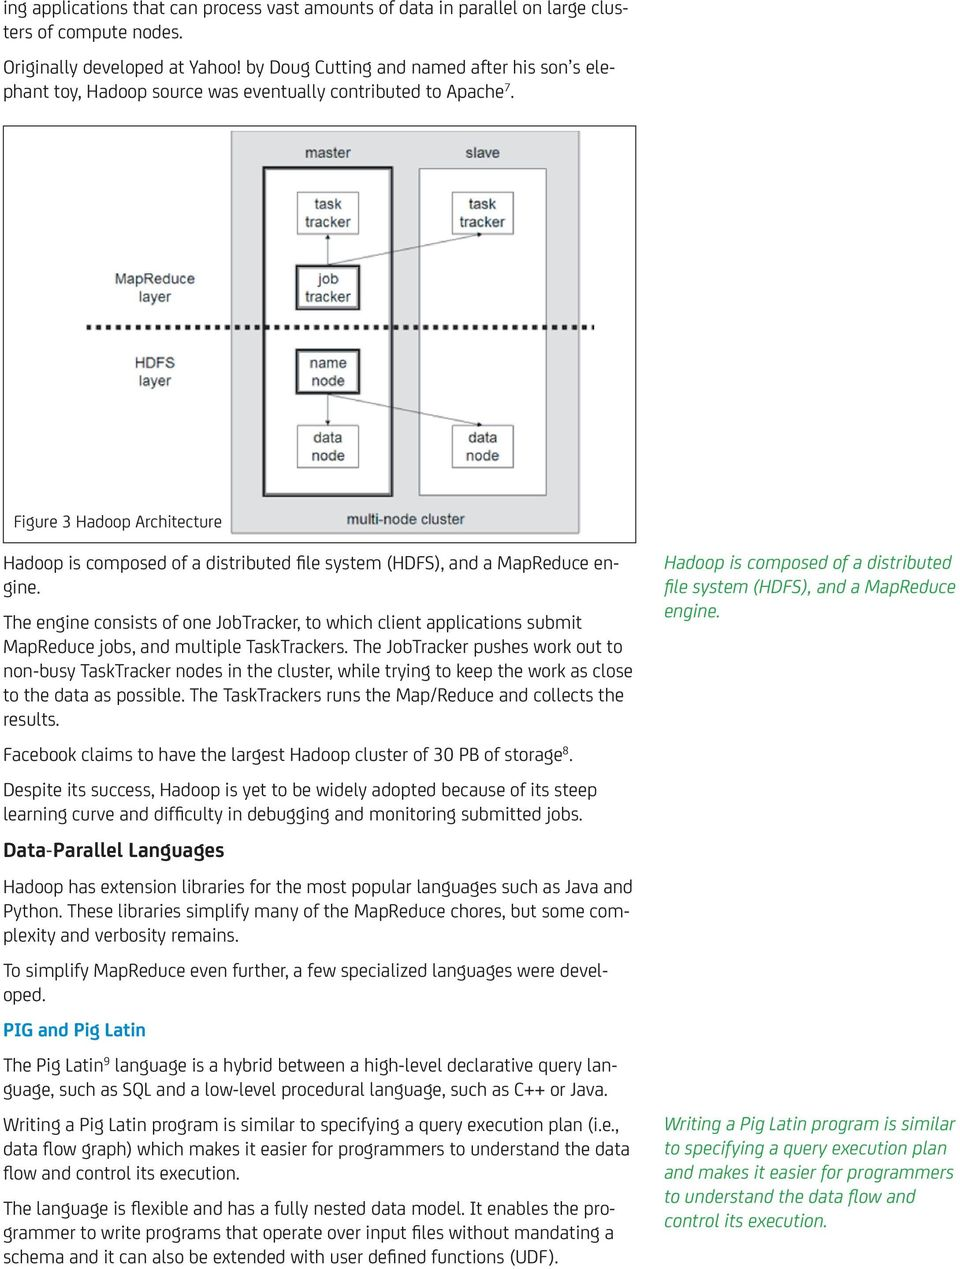 Figure 3 Hadoop Architecture Hadoop is composed of a distributed file system (HDFS), and a MapReduce engine.